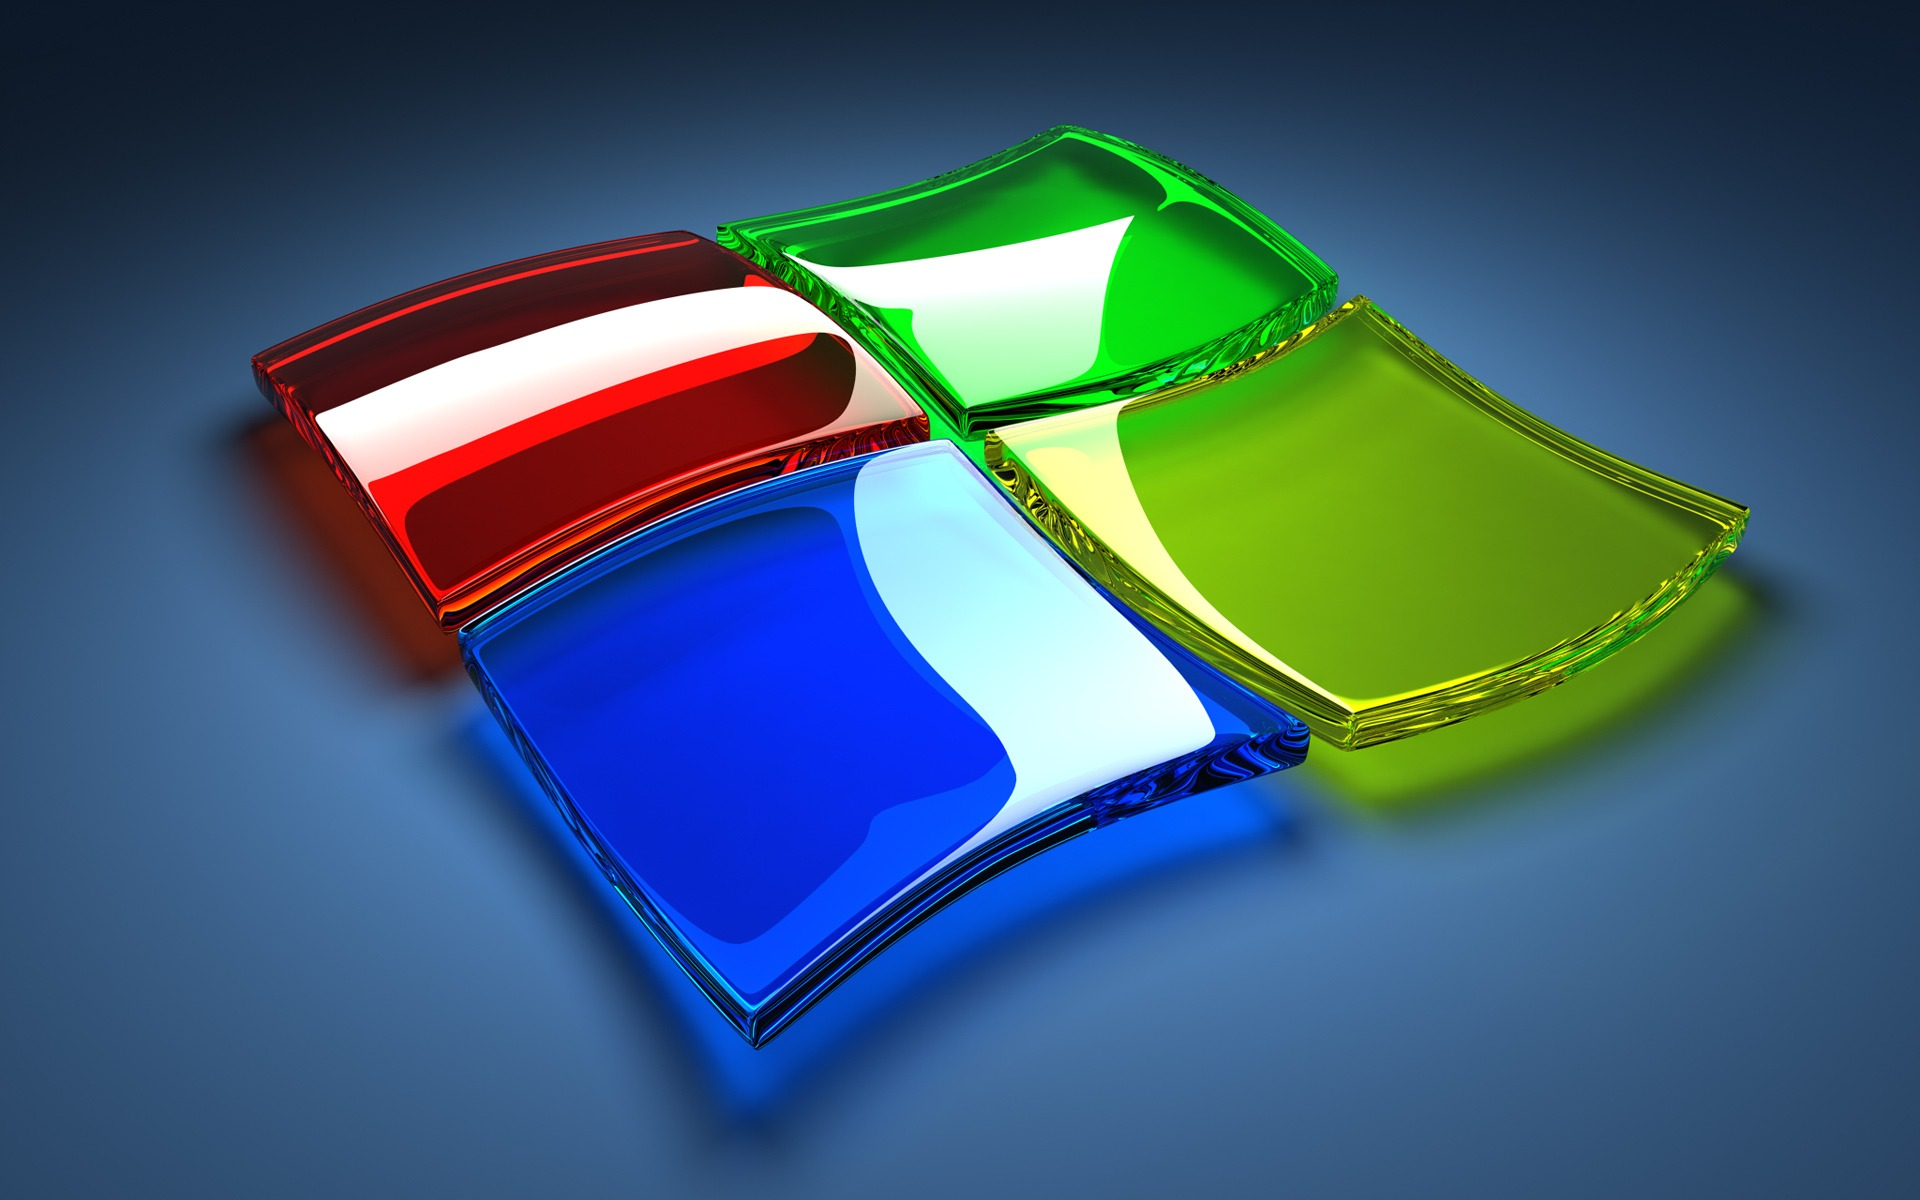 Free Download 3d Abstract Windows 7 3d Wallpaper Hd Hd Wallpapers